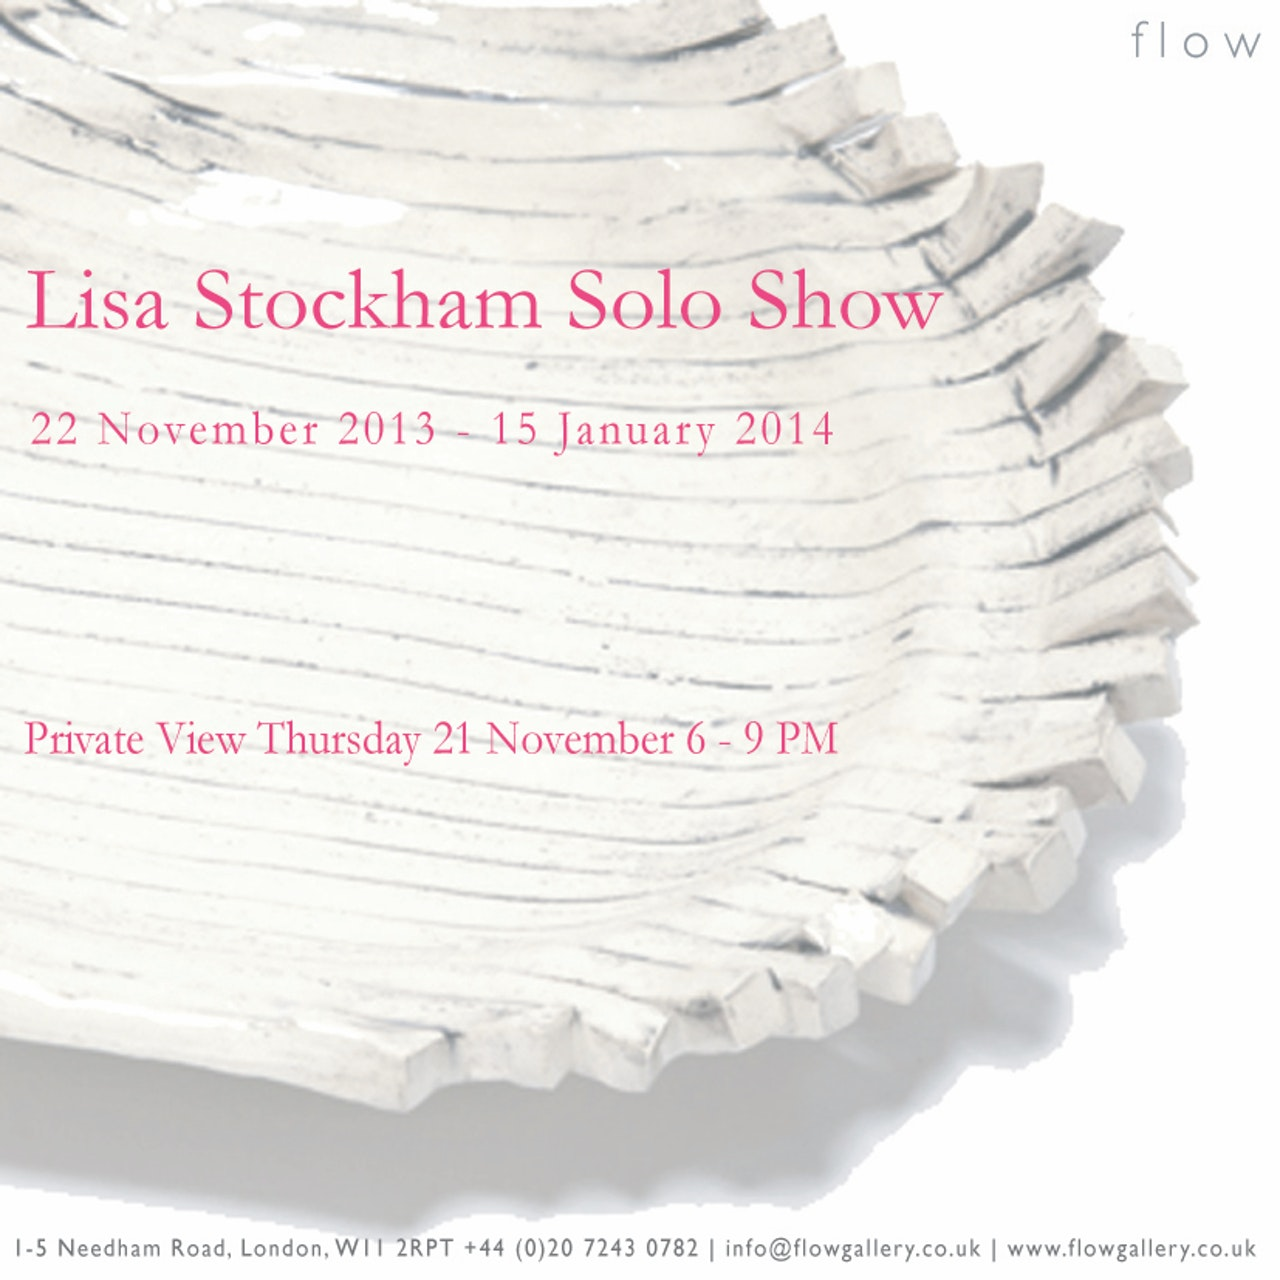 Solo Show at flow | PV 21 November 2013